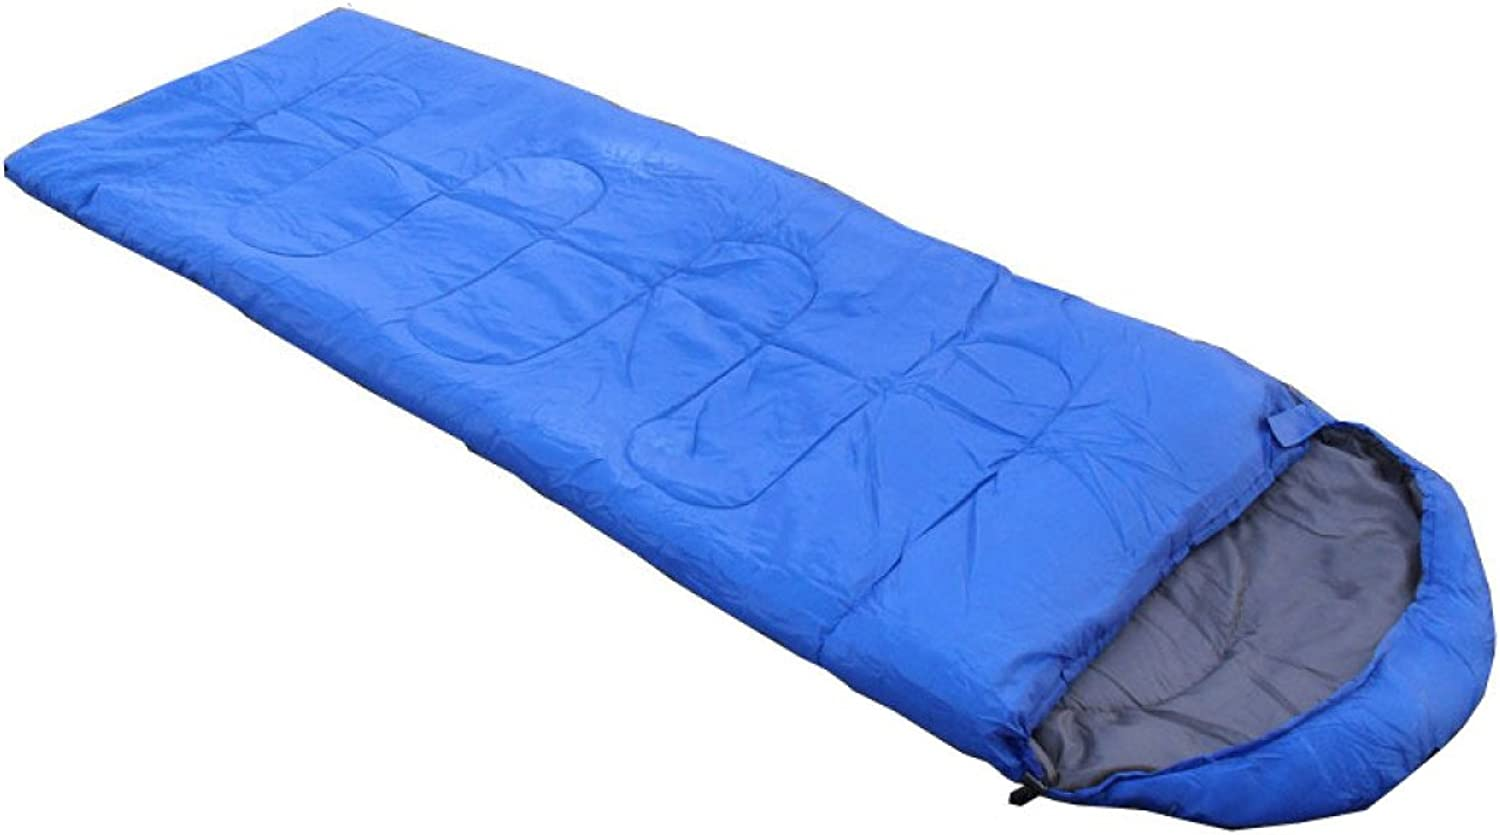 Four Seasons Adult Sleeping Bags Outdoor Spring And Summer Camping Portable Sleeping Bags Indoor Lunch Break,A2